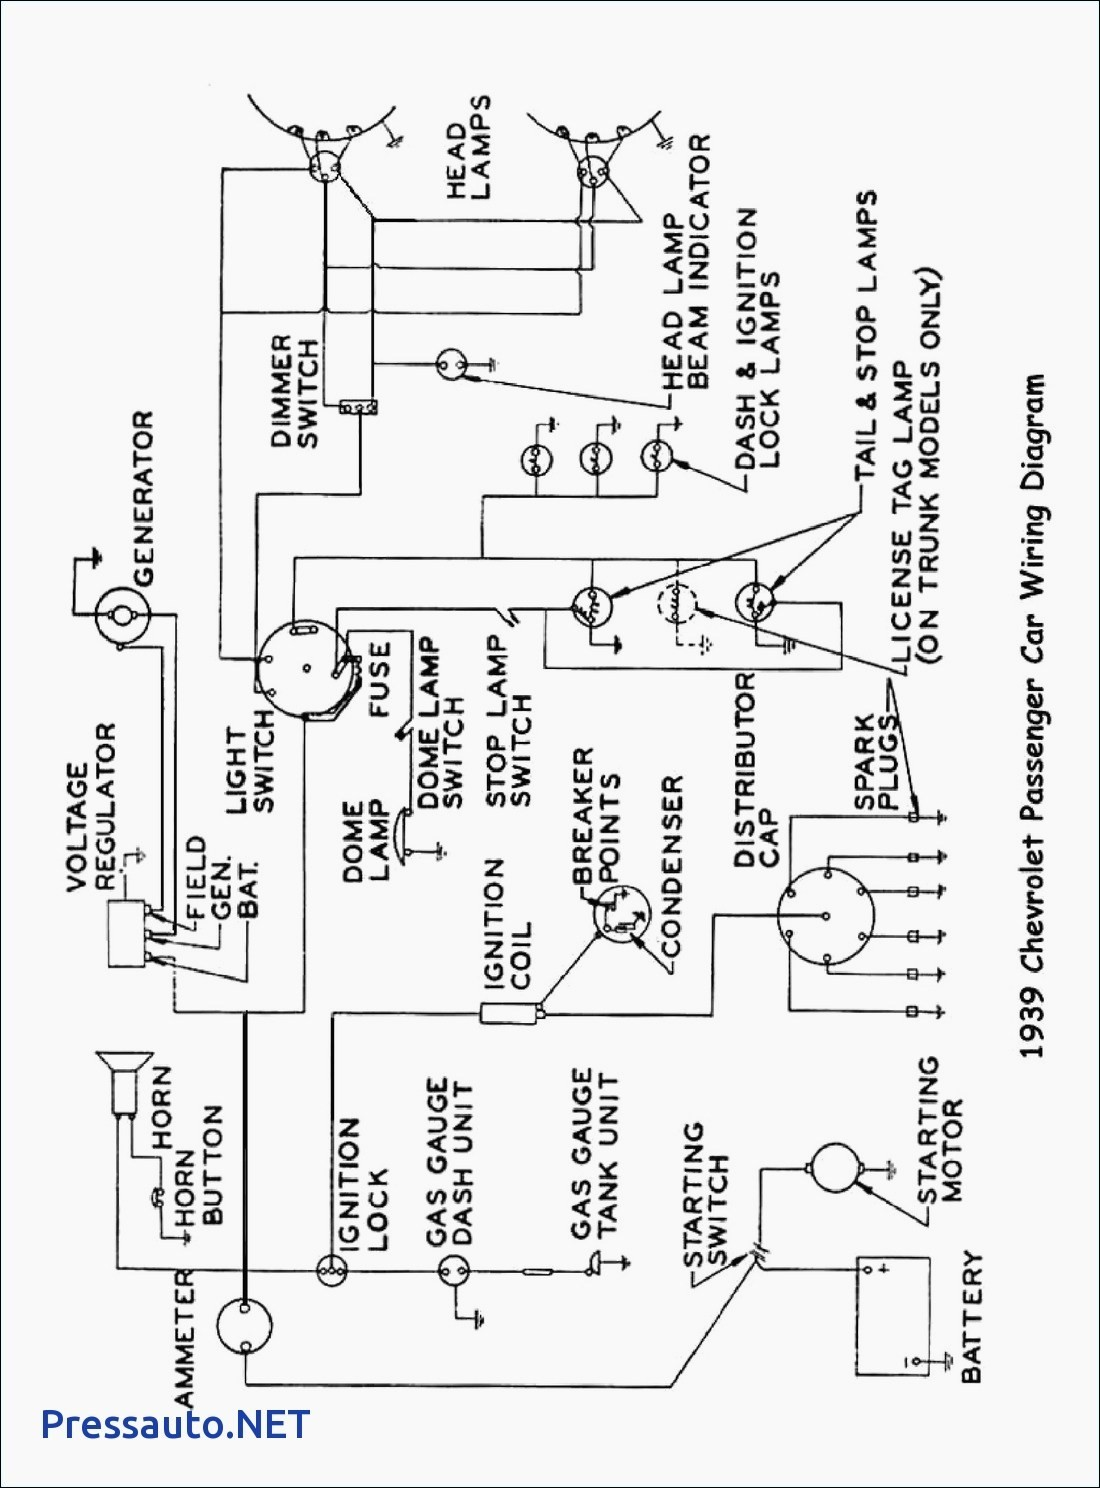 small resolution of jd 314 wiring diagram wiring diagram yer jd 314 wiring diagram